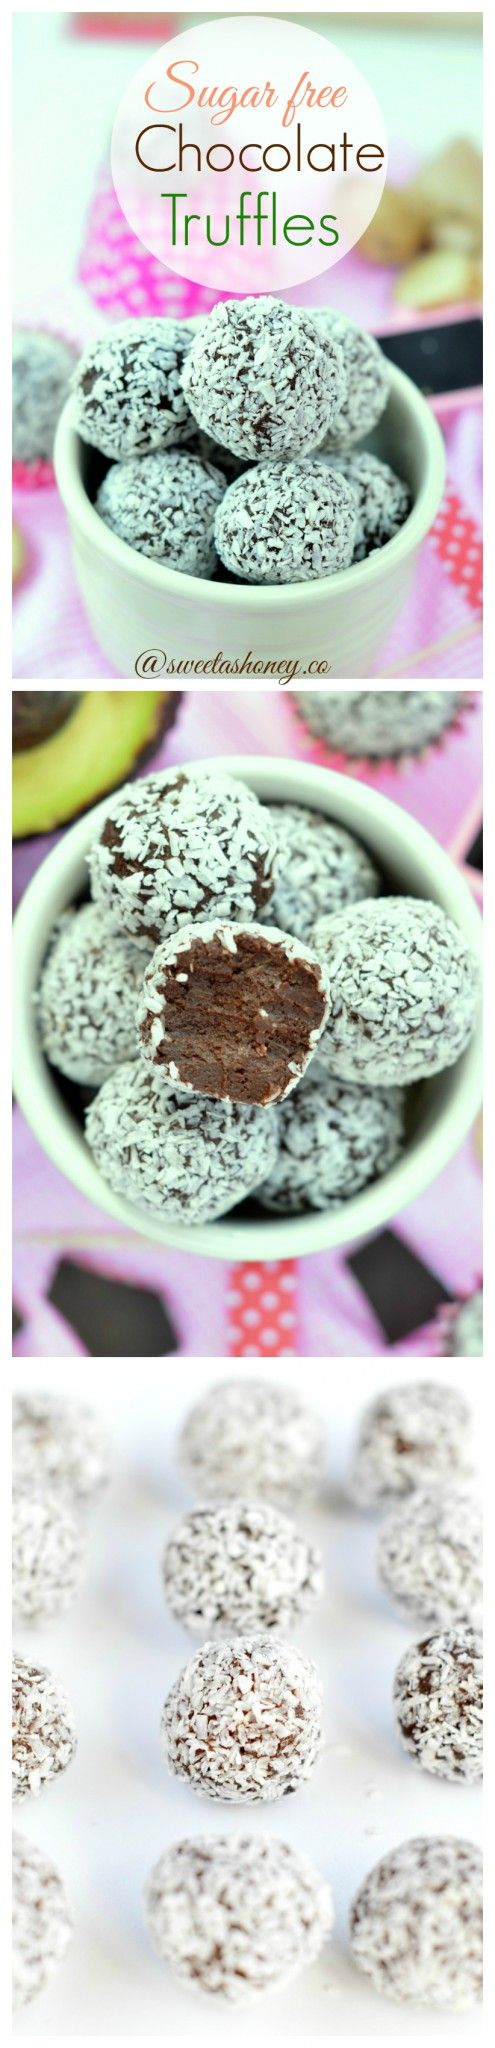 I am SO making this for Valentines Day! This is the Best Creamy Chocolate Truffles ever & ridiculously easy to make! Sugar free, vegan and gluten free.